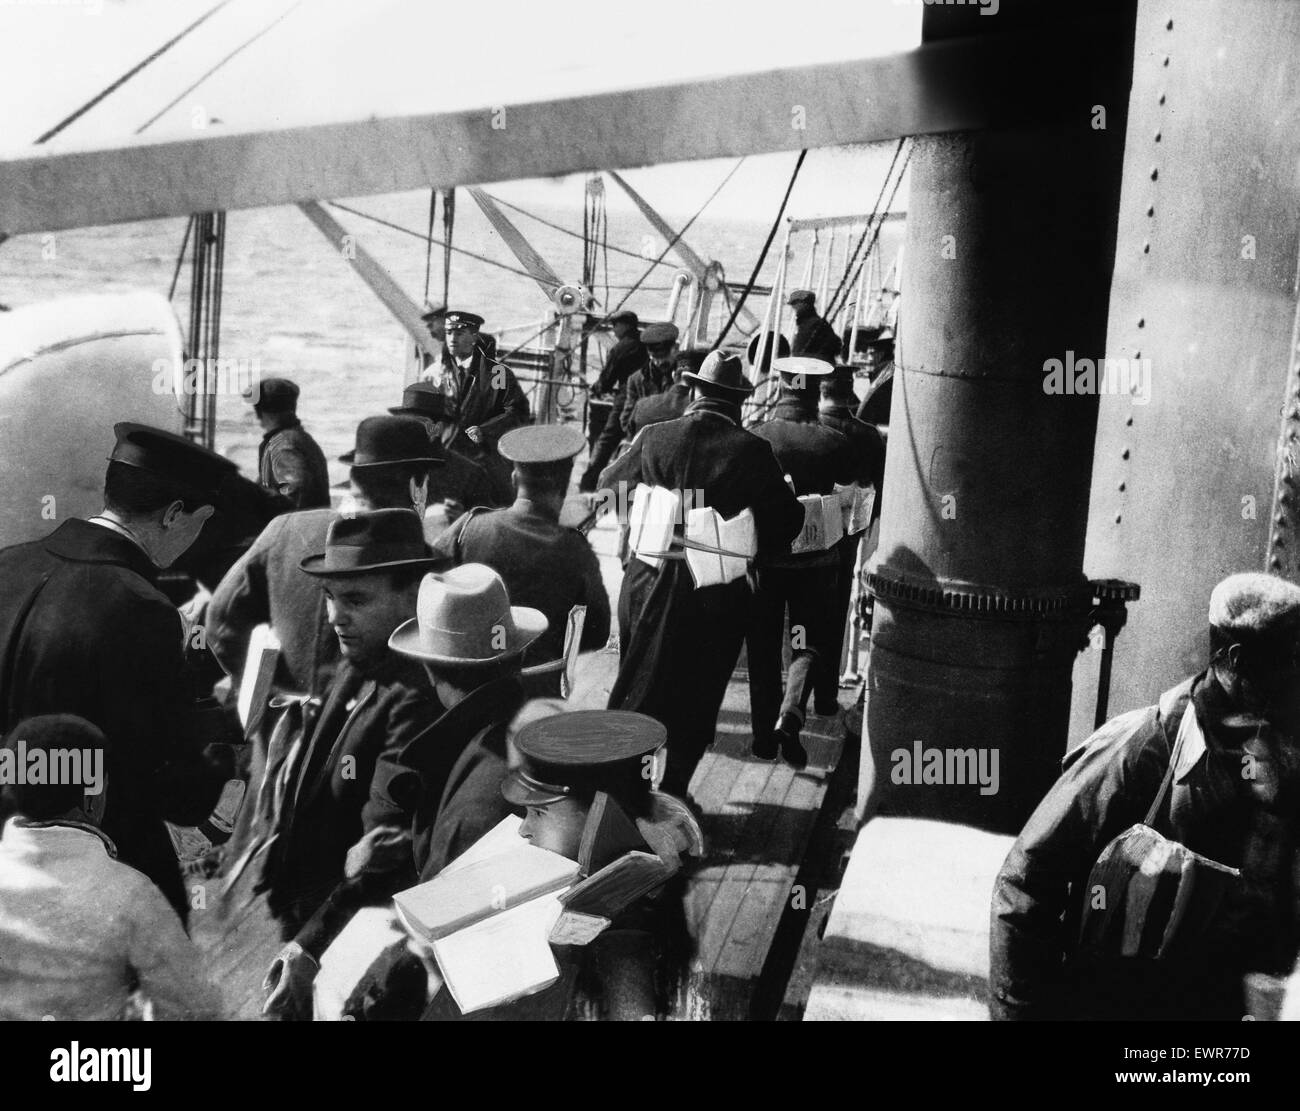 Sinking of the ship Falaba DM 3141d Box 5 March 28th 1915. The sinking of the 'Falaba'. Passengers onboard - Stock Image